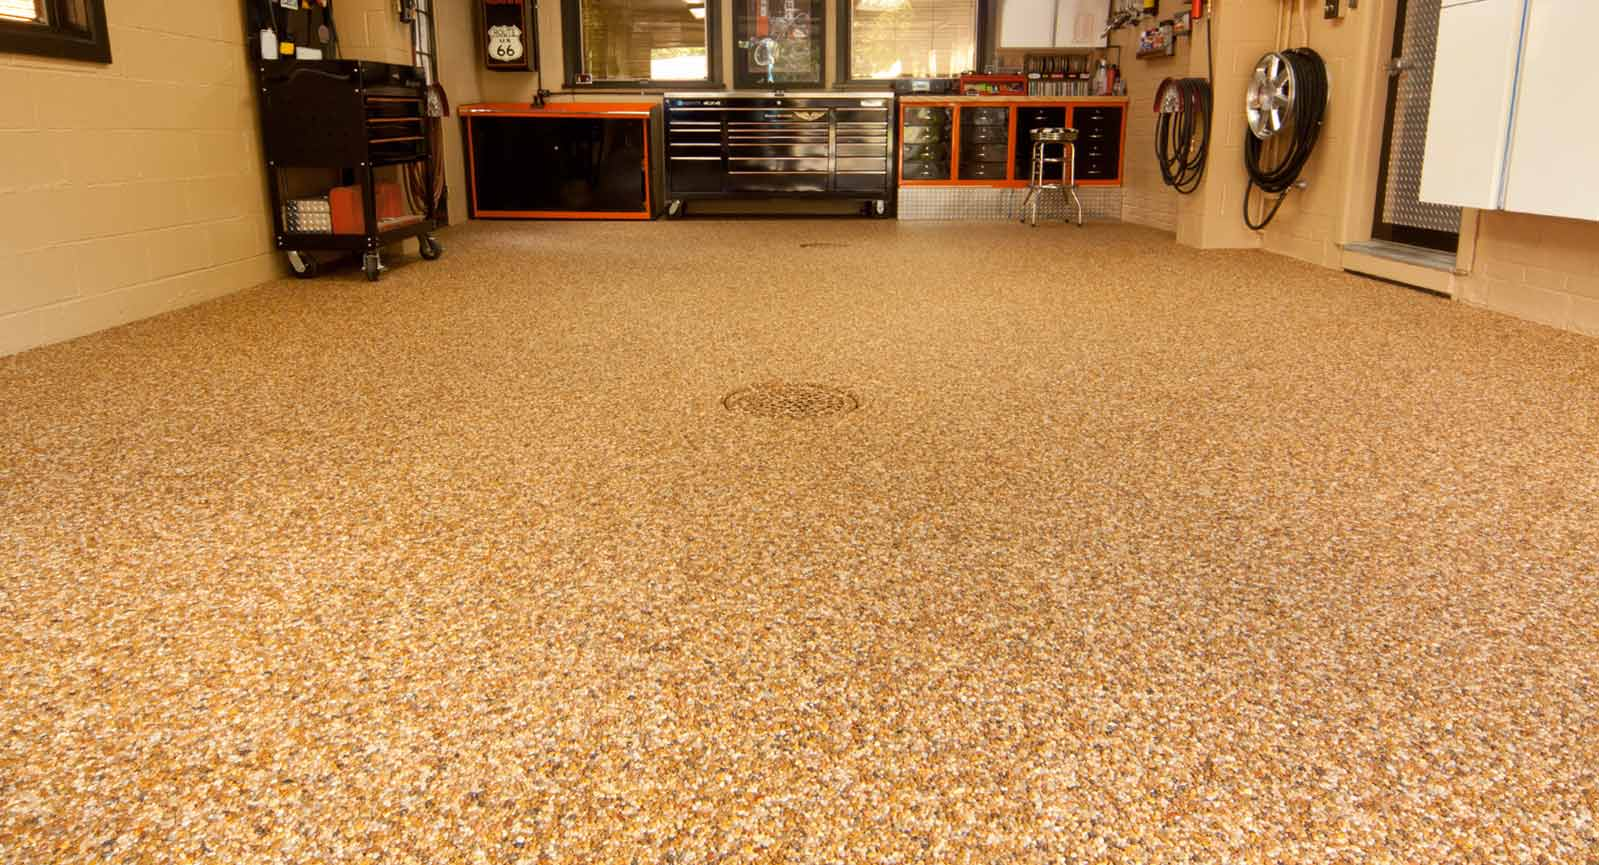 Bring Basement Floor Covering More Vivid HomesFeed - What is the best floor covering for a concrete basement